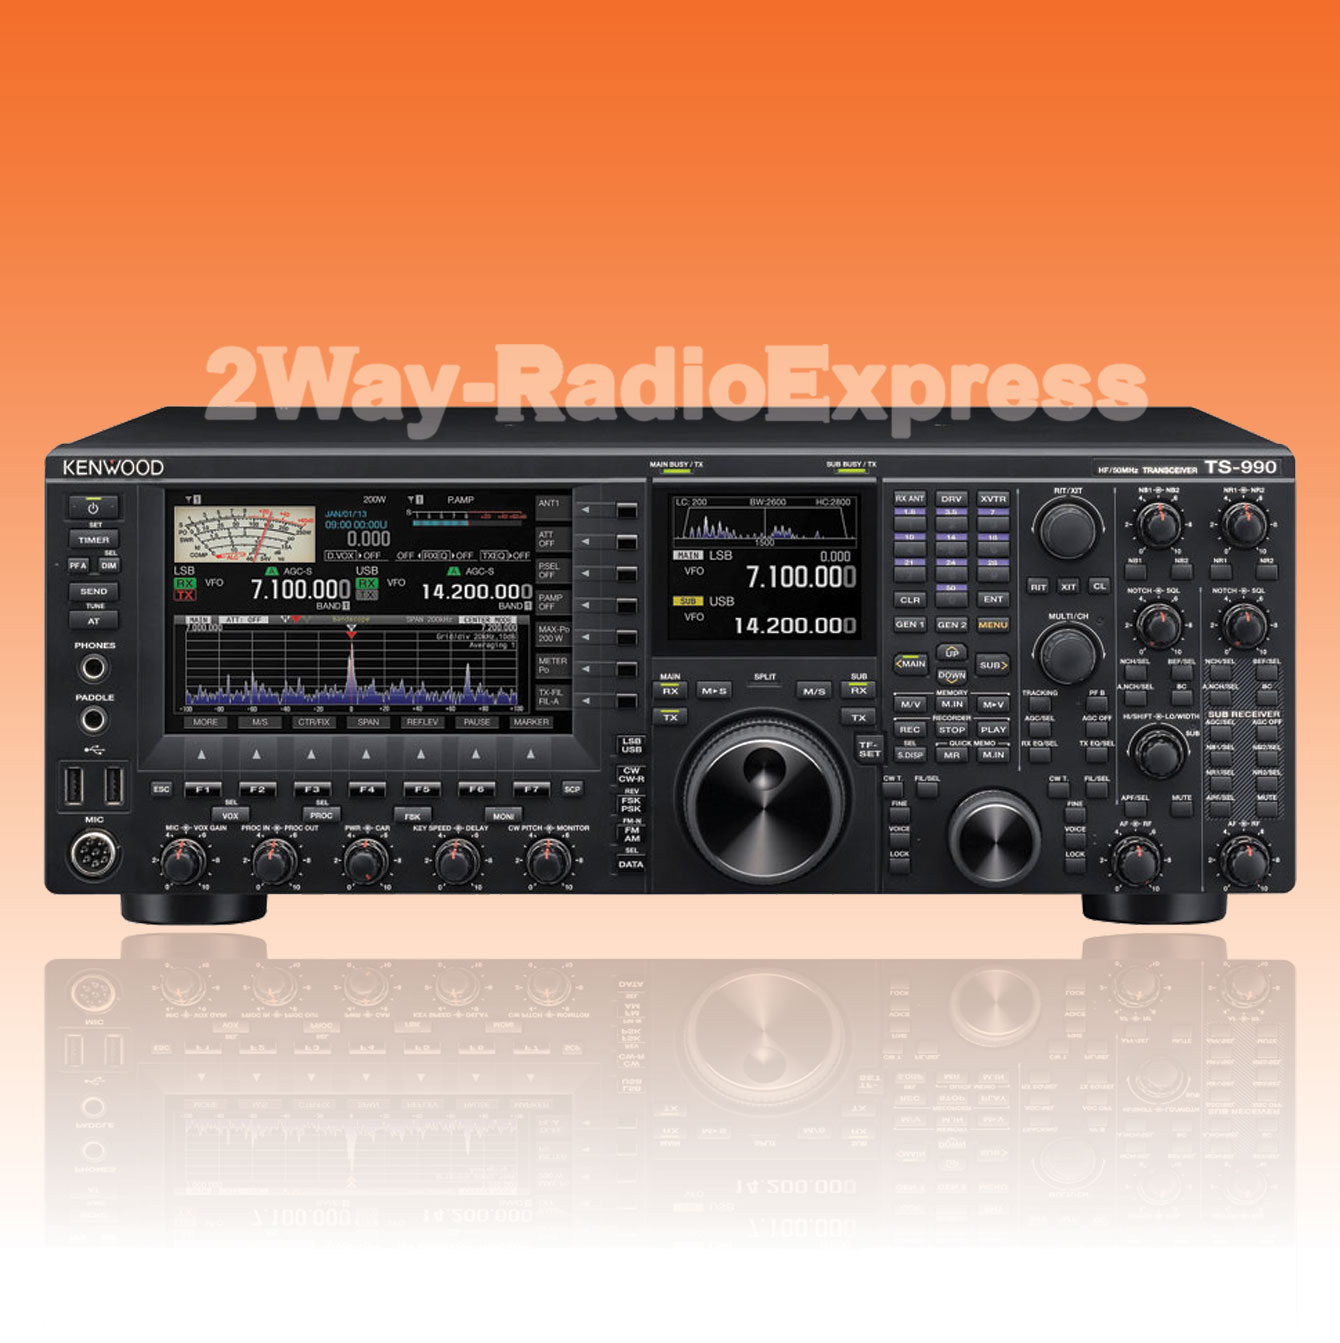 KENWOOD-TS-990S-HF-50MHz-Tranceiver-200-Watt-Large-UNBLOCKED-TX-RANGE